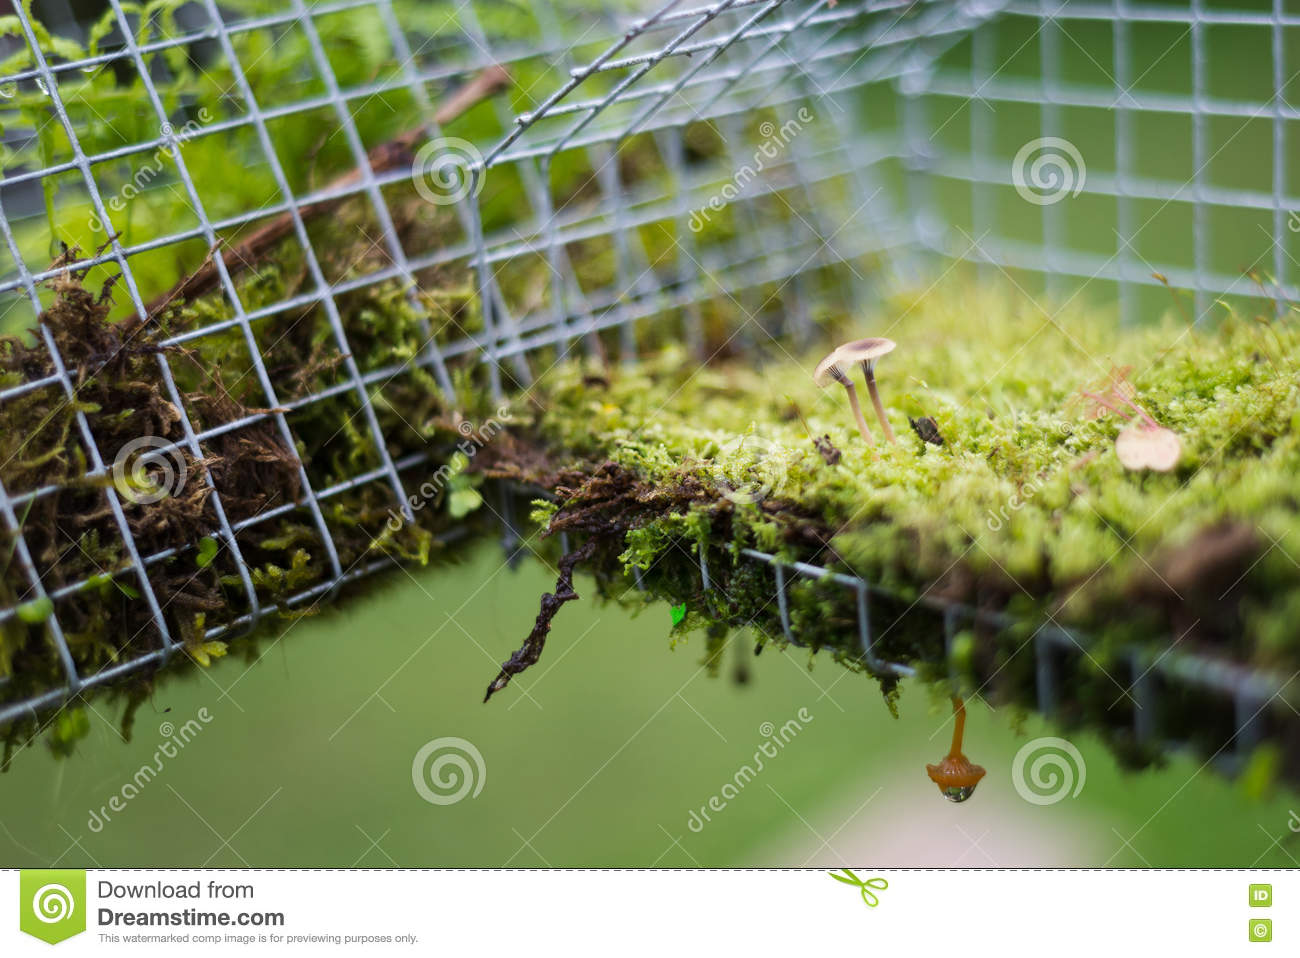 Fairy House Garden Decoration Hanging Wire Cage, Moss, Mushroom ...